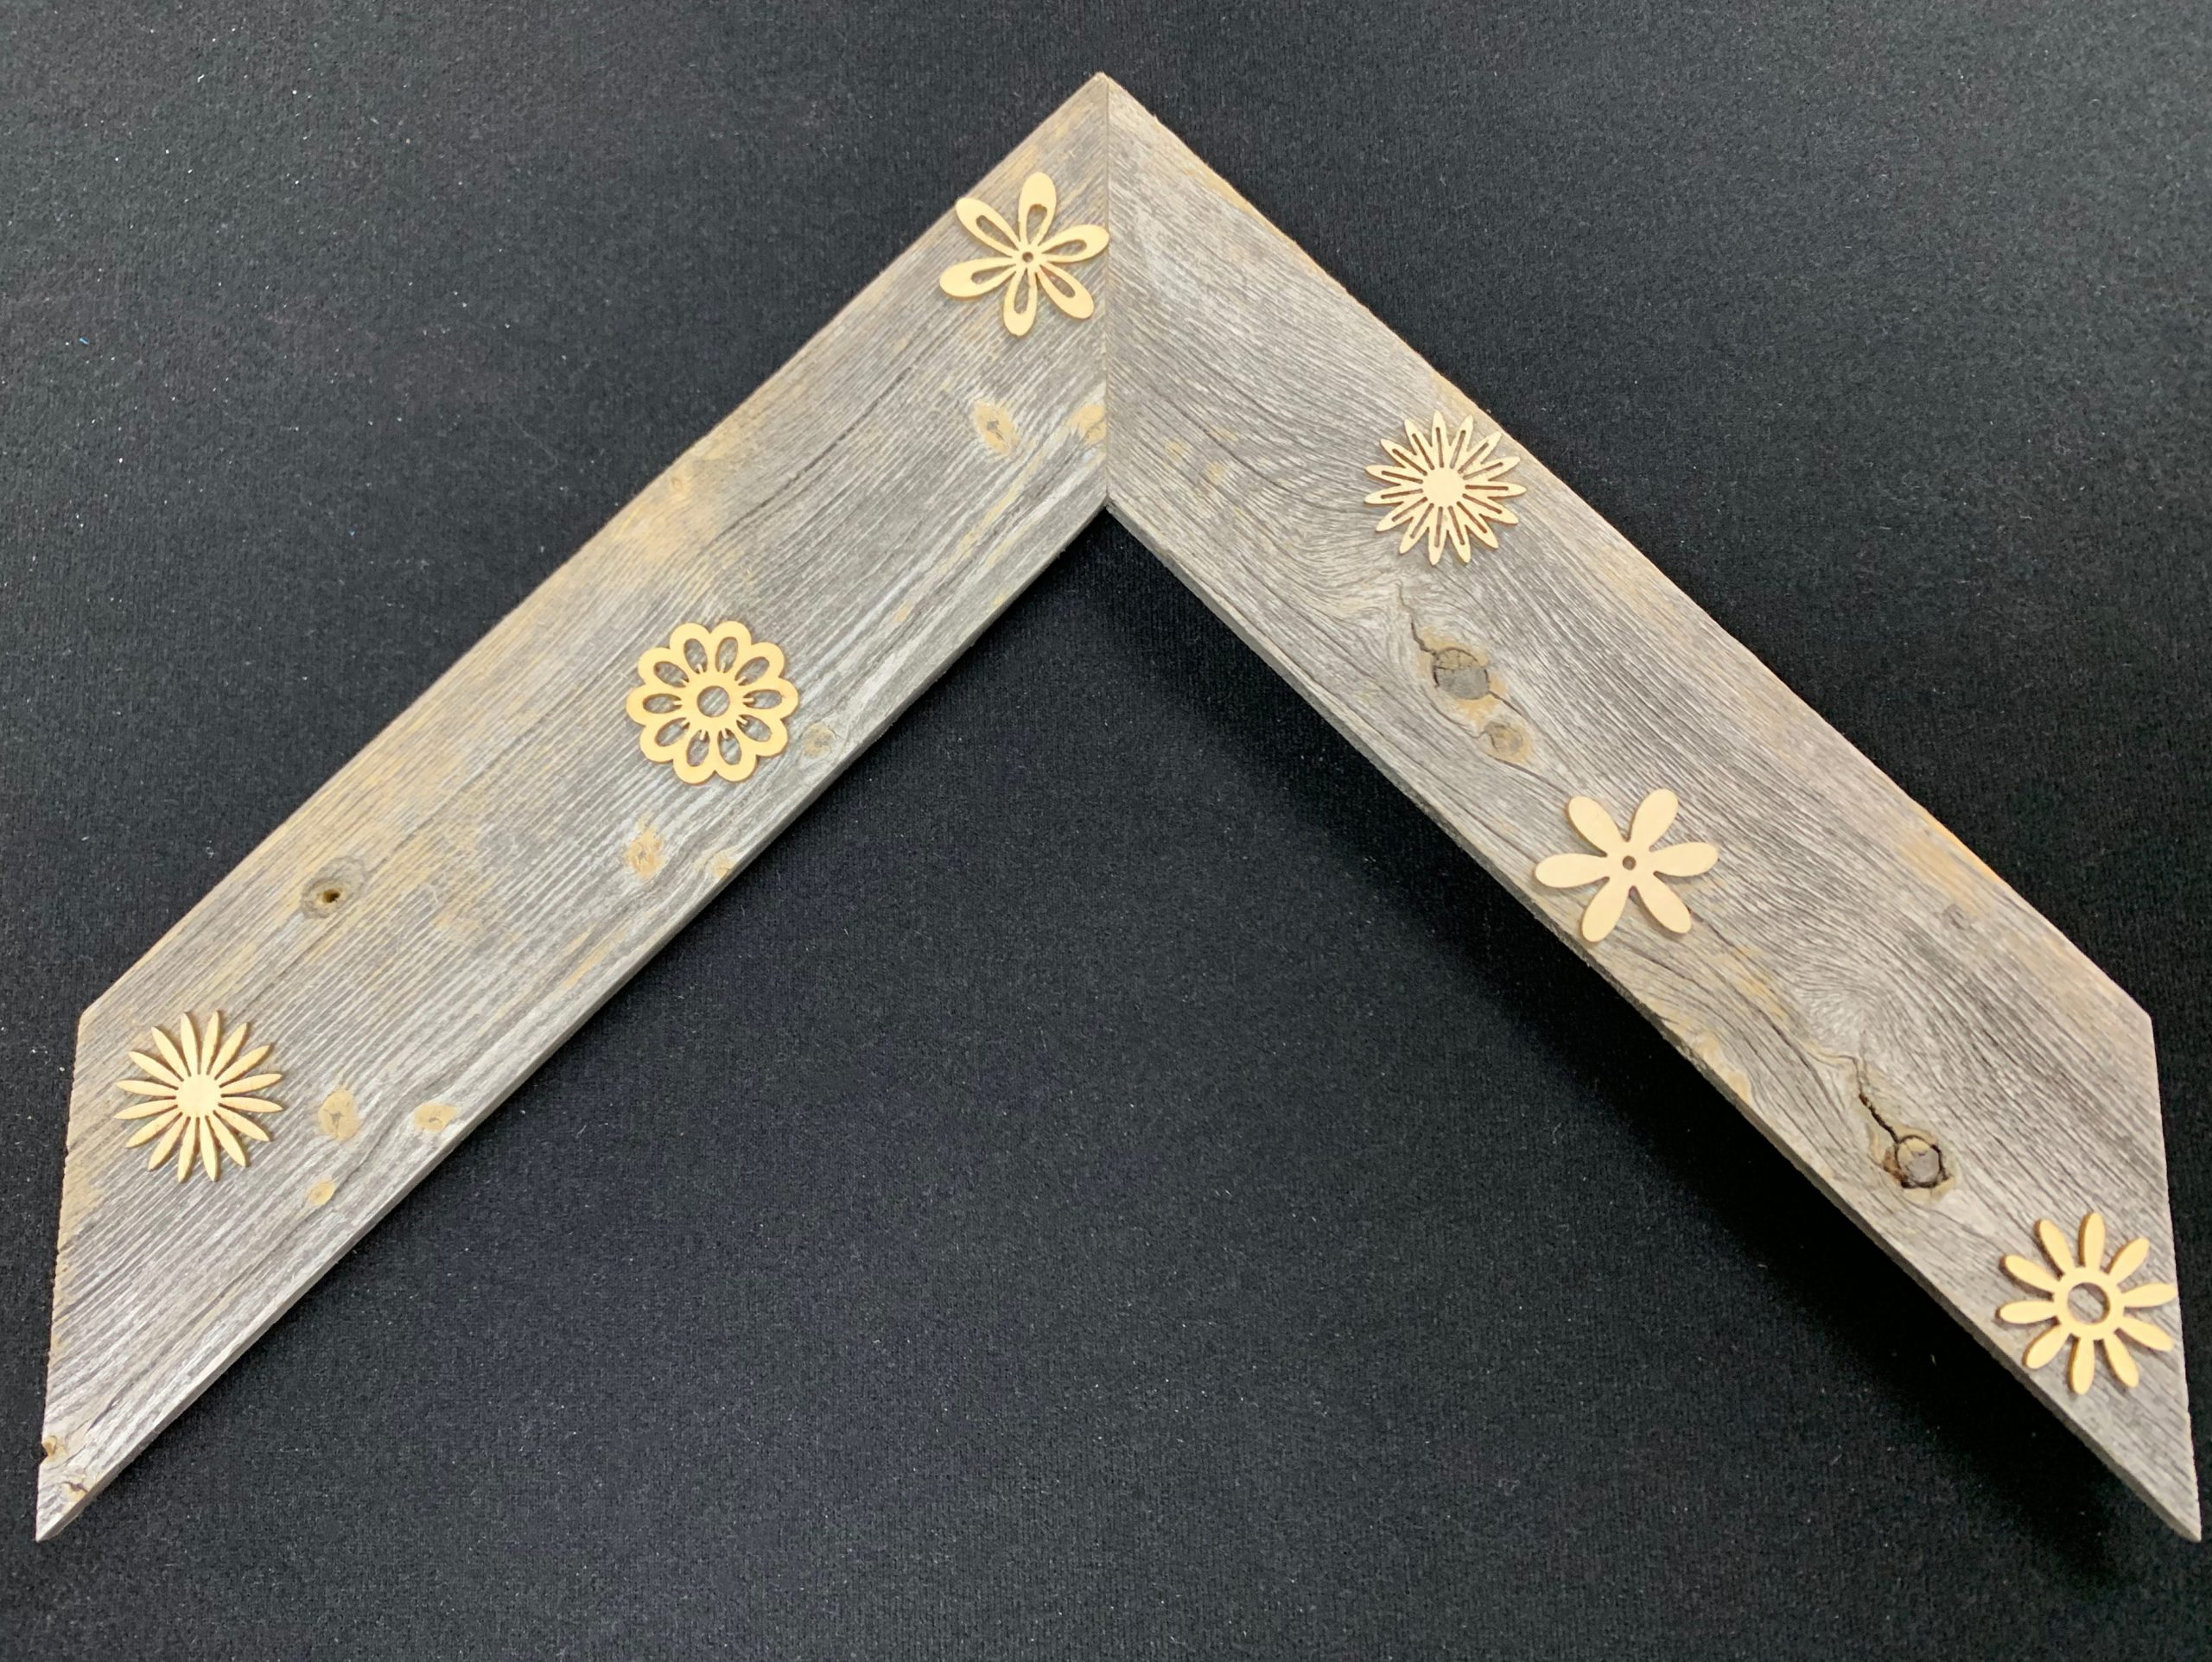 Barnwood enhanced with laser cut wood flowers